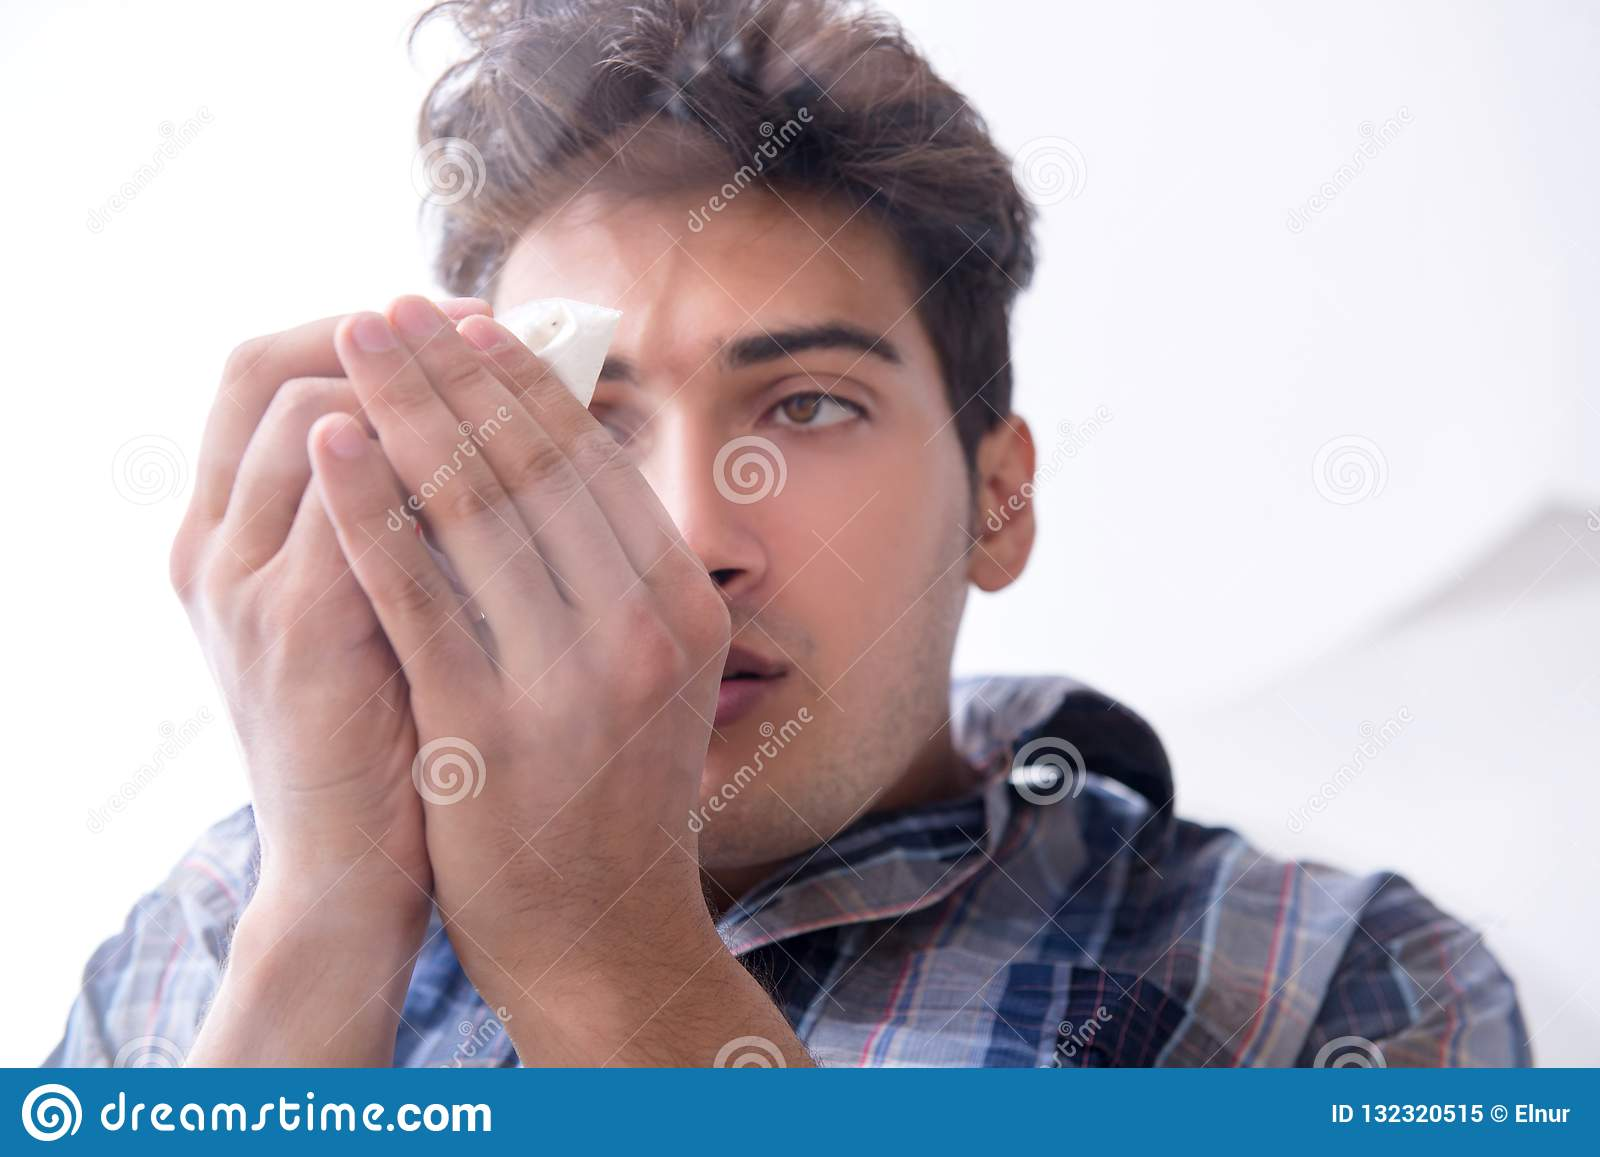 The Drug Addict Sniffing Cocaine Narcotic Stock Image - Image of